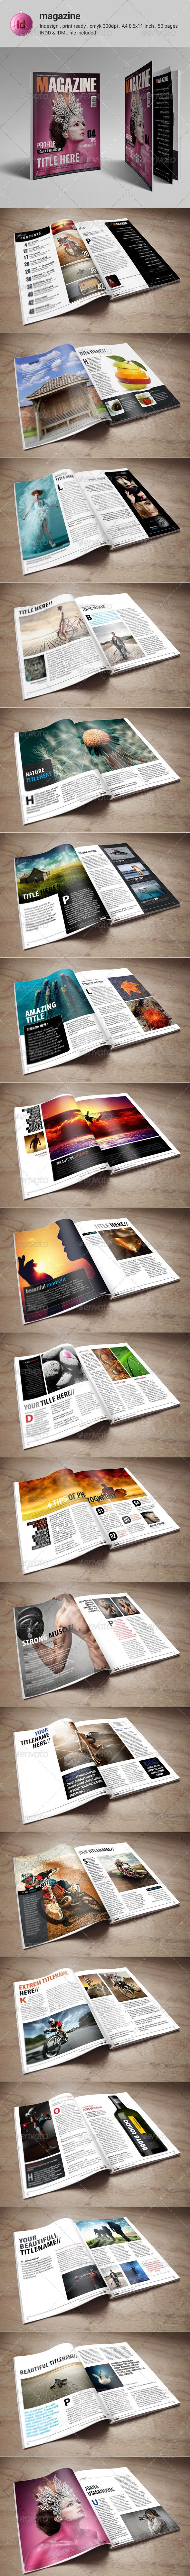 50 Pages Indesign Magazine Template - Magazines Print Templates